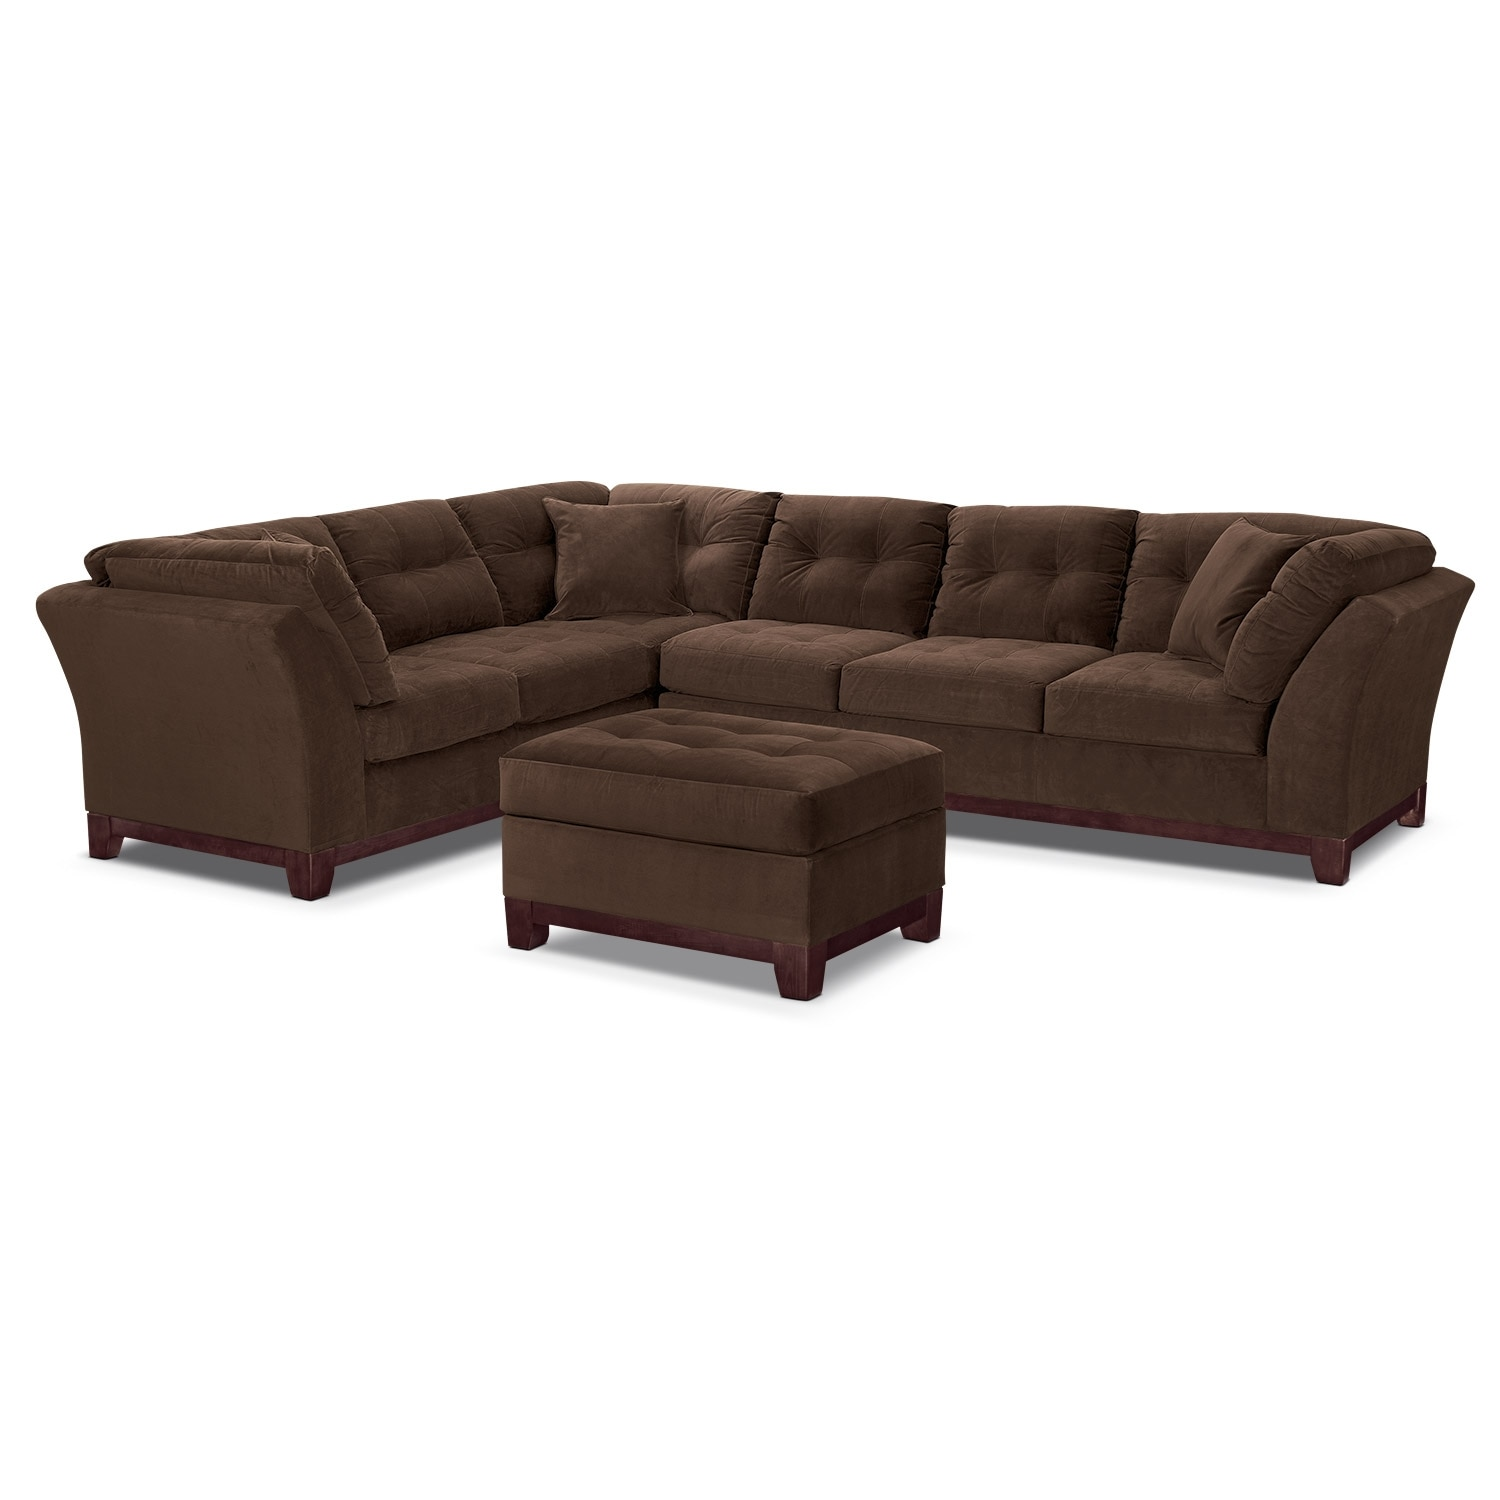 Living Room Furniture - Solace Chocolate II 3 Pc. Sectional and Ottoman